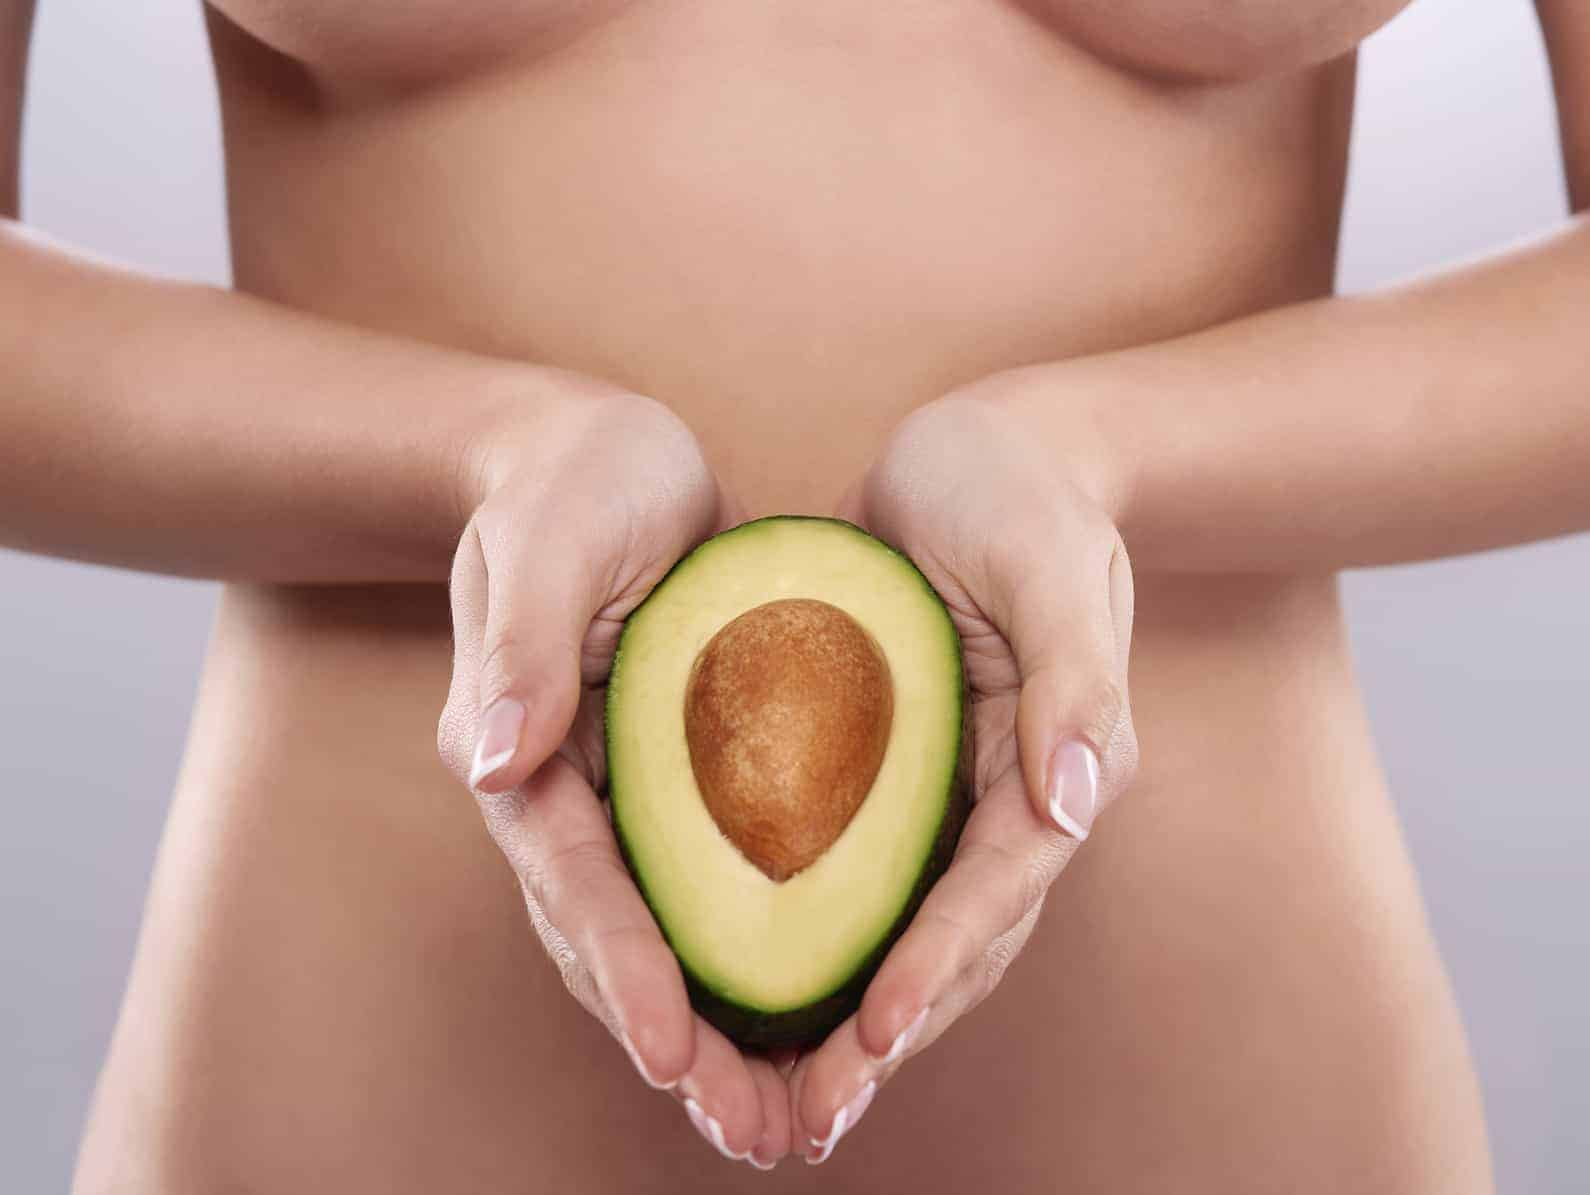 Naked woman holding the fresh avocado